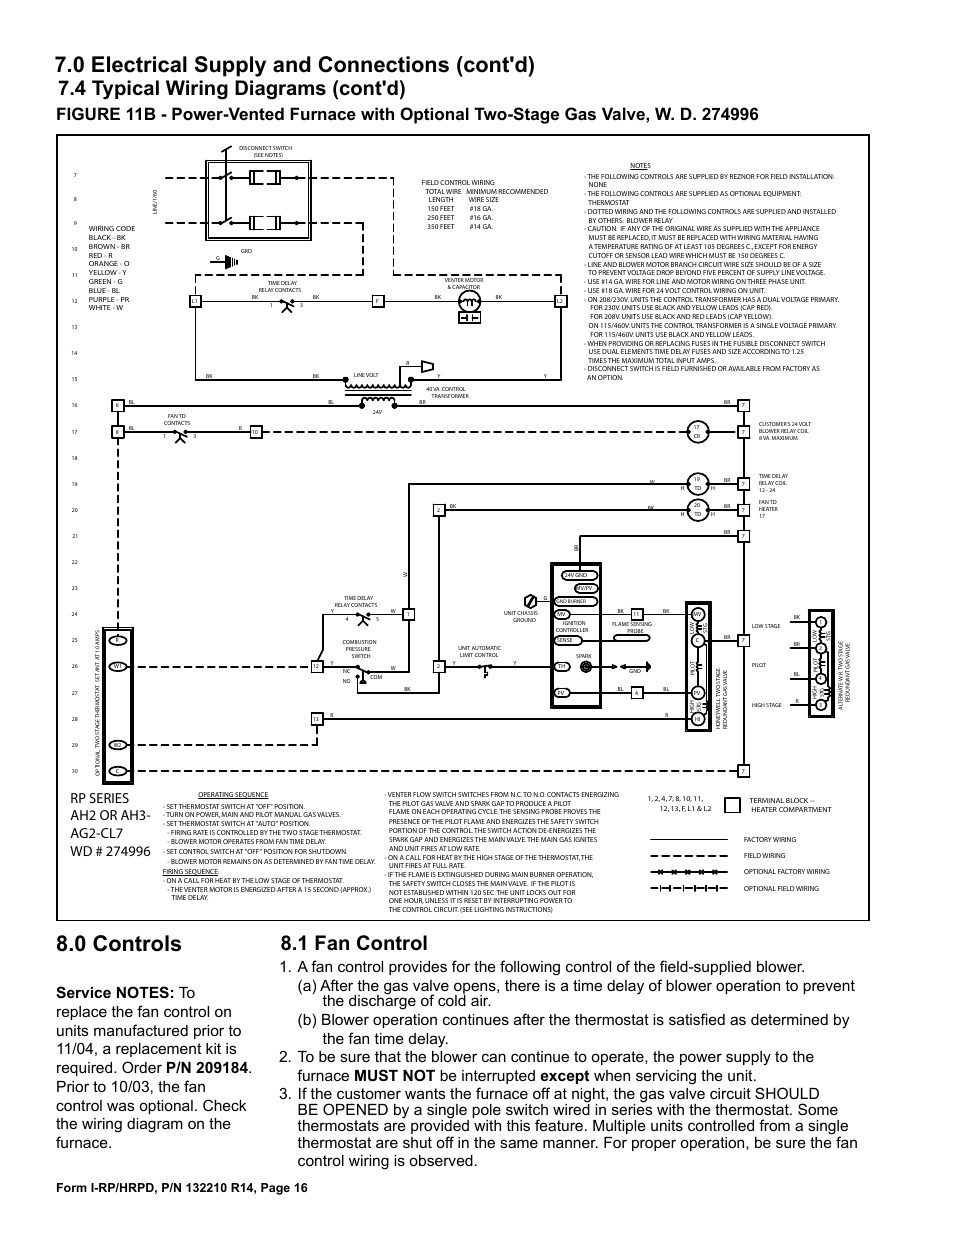 medium resolution of typical control wiring on furnace reznor wiring diagram centre1 fan control 4 typical wiring diagrams